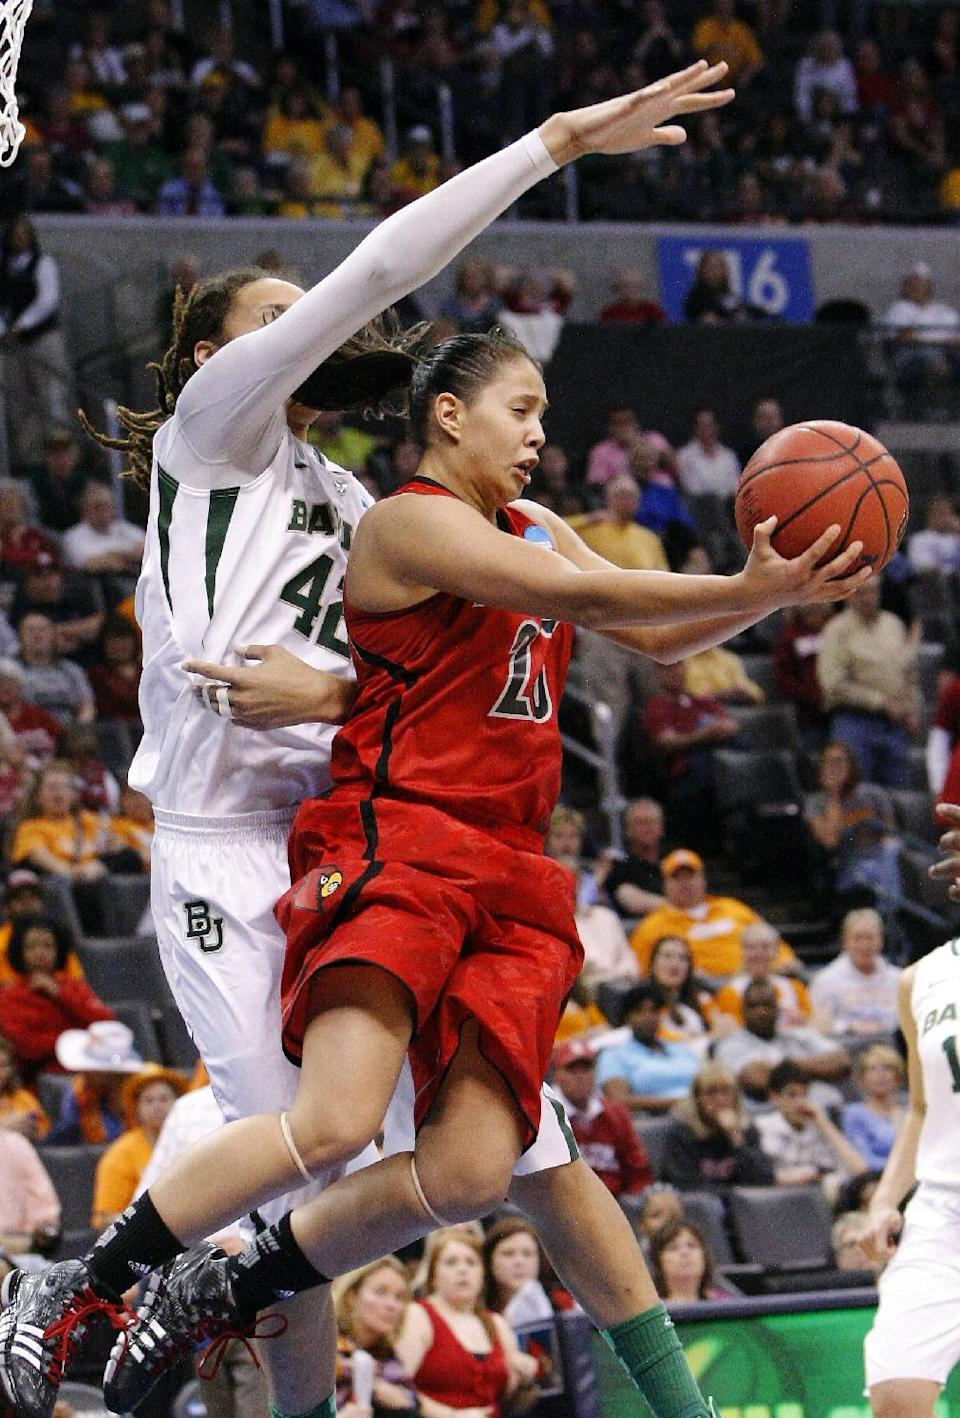 Louisville guard Shoni Schimmel (23) takes a reverse shot over Baylor's Brittney Griner (42) during the second half of a regional semifinal in the women's NCAA college basketball tournament in Oklahoma City, Sunday, March 31, 2013.  Louisville won 82-81. (AP Photo/Alonzo Adams)